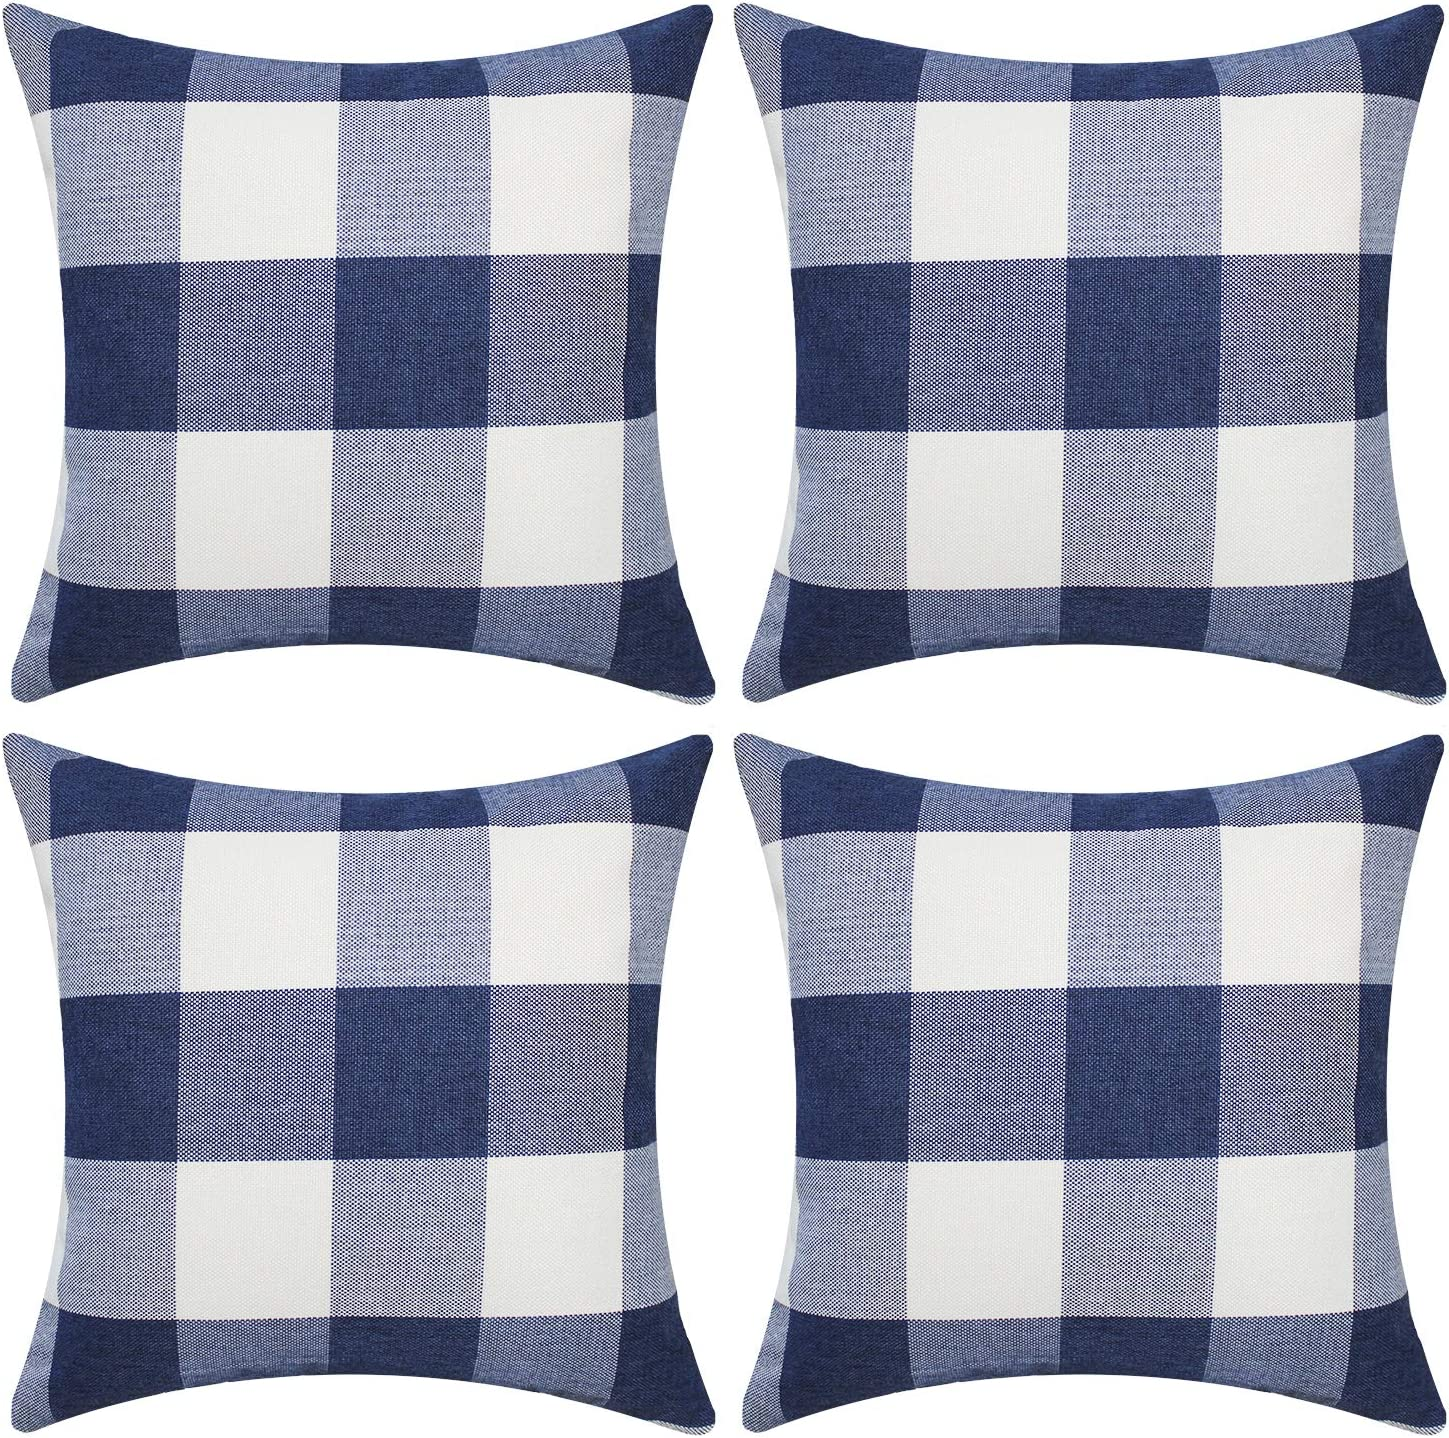 Gysan Buffalo Check Plaid Throw Pillow Covers Decorative Square Pillow Case Set of 4 18x18 Inches for Farmhouse Home Decor Cushion Cover Couch Sofa Bed Car, Navy Blue & White